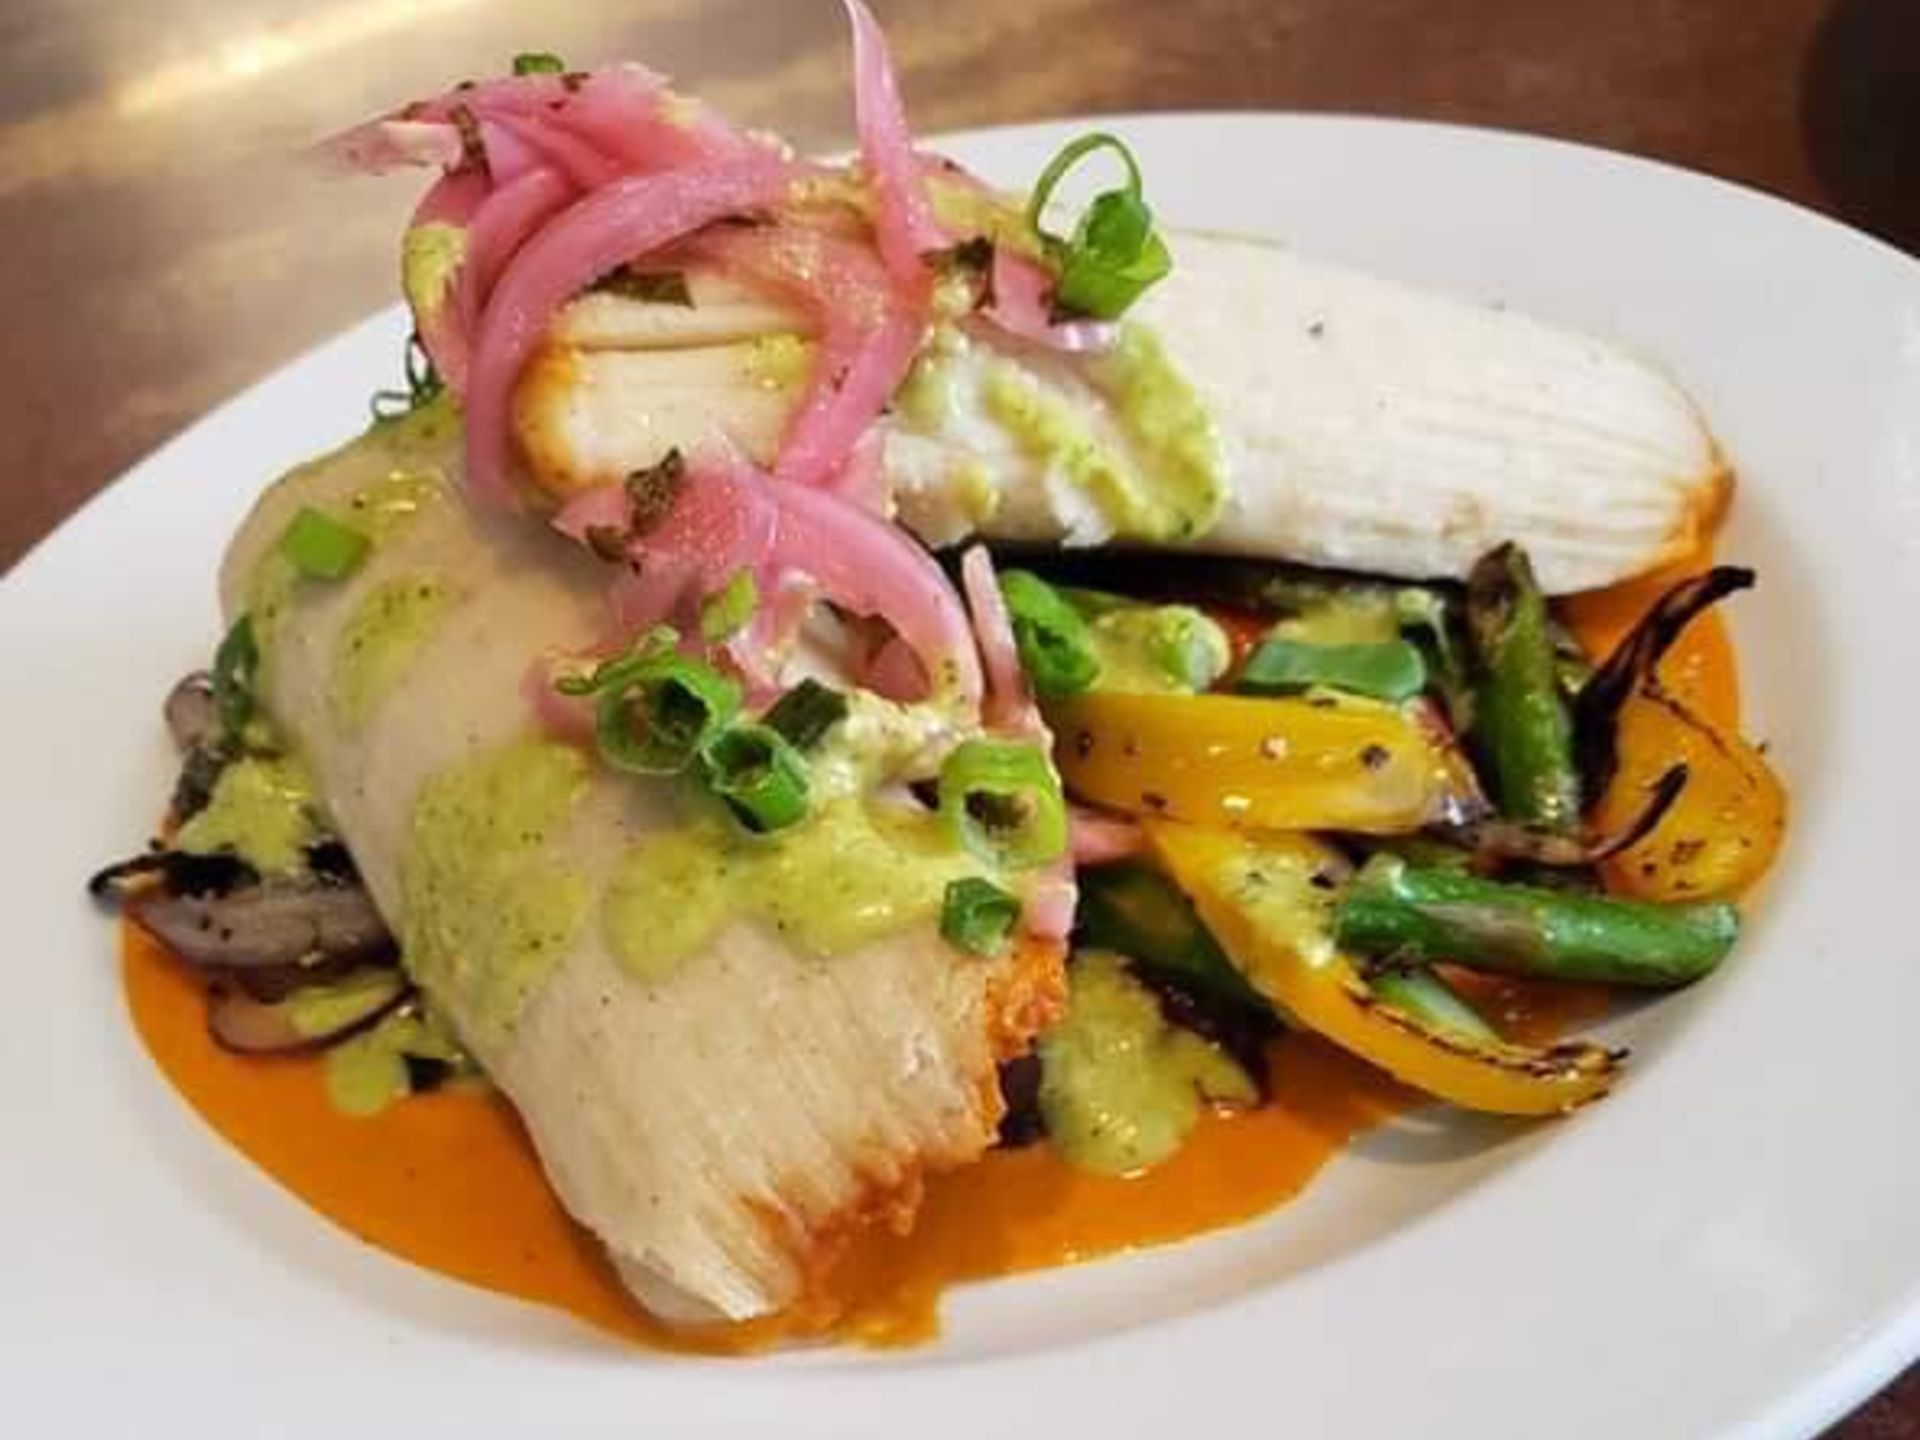 grilled fish with a side of vegetables on a bed of sauce